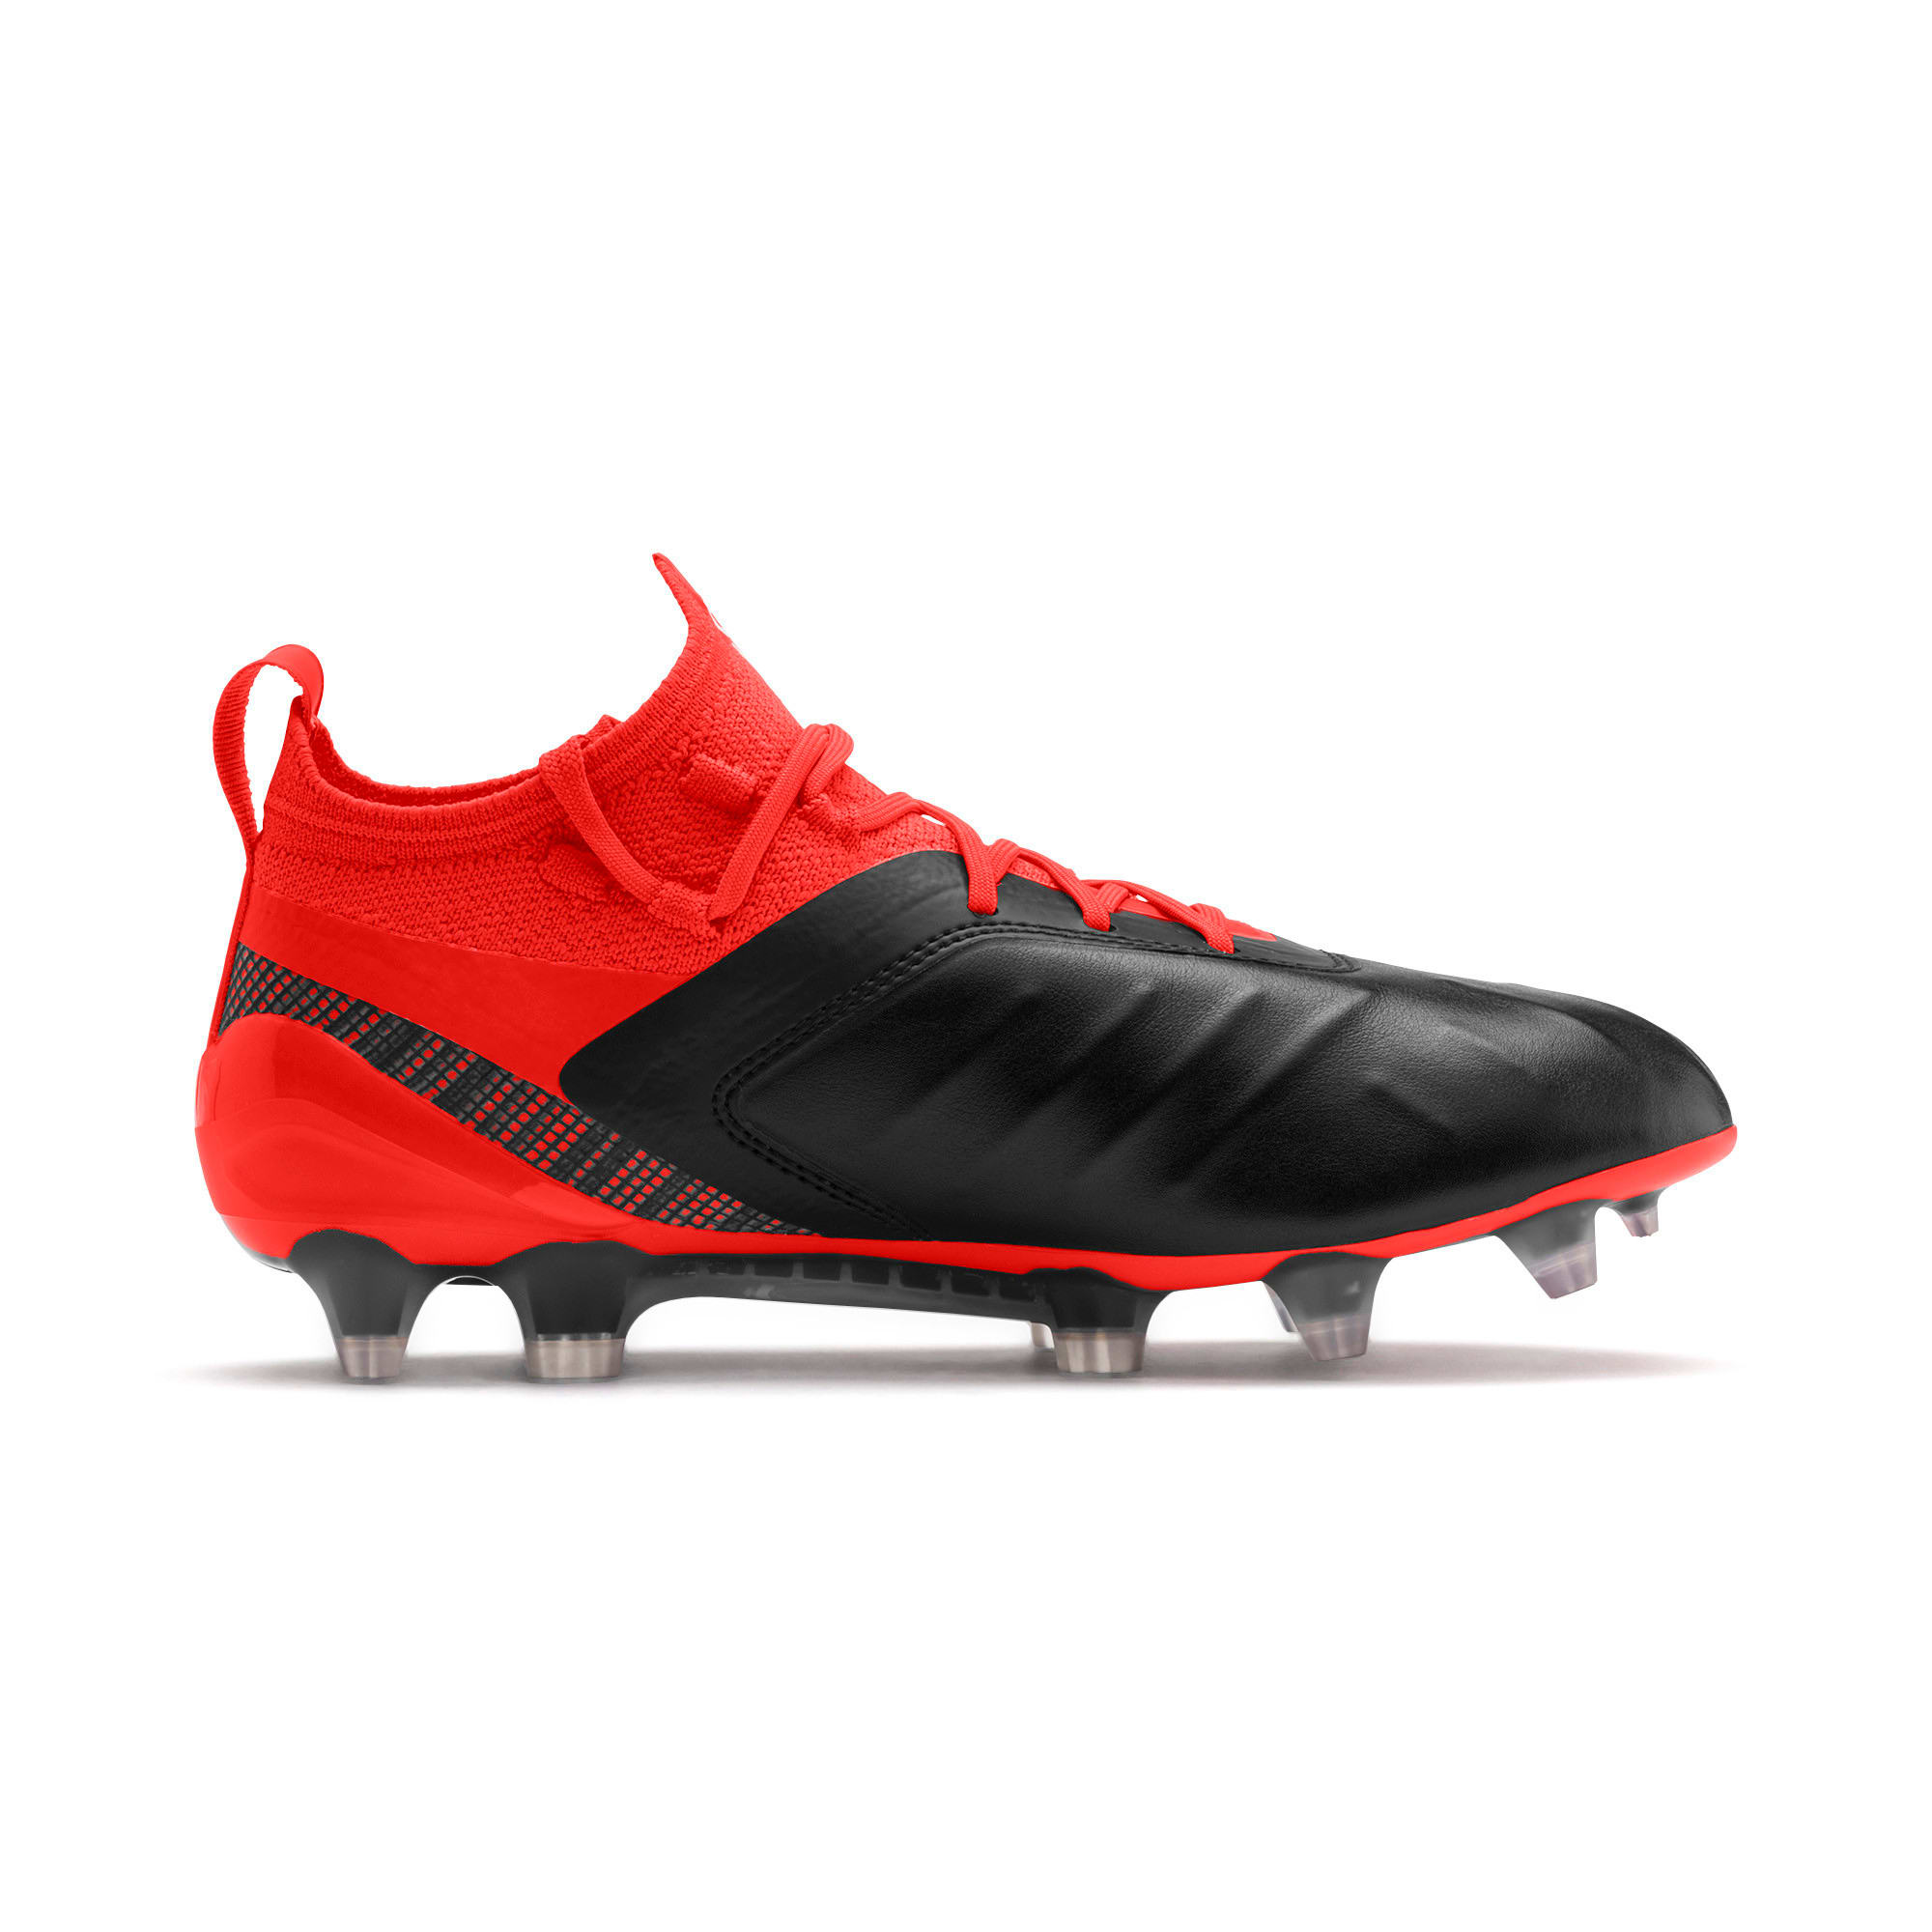 Thumbnail 5 of PUMA ONE 5.1 voetbalschoenen voor jeugd, Black-Nrgy Red-Aged Silver, medium